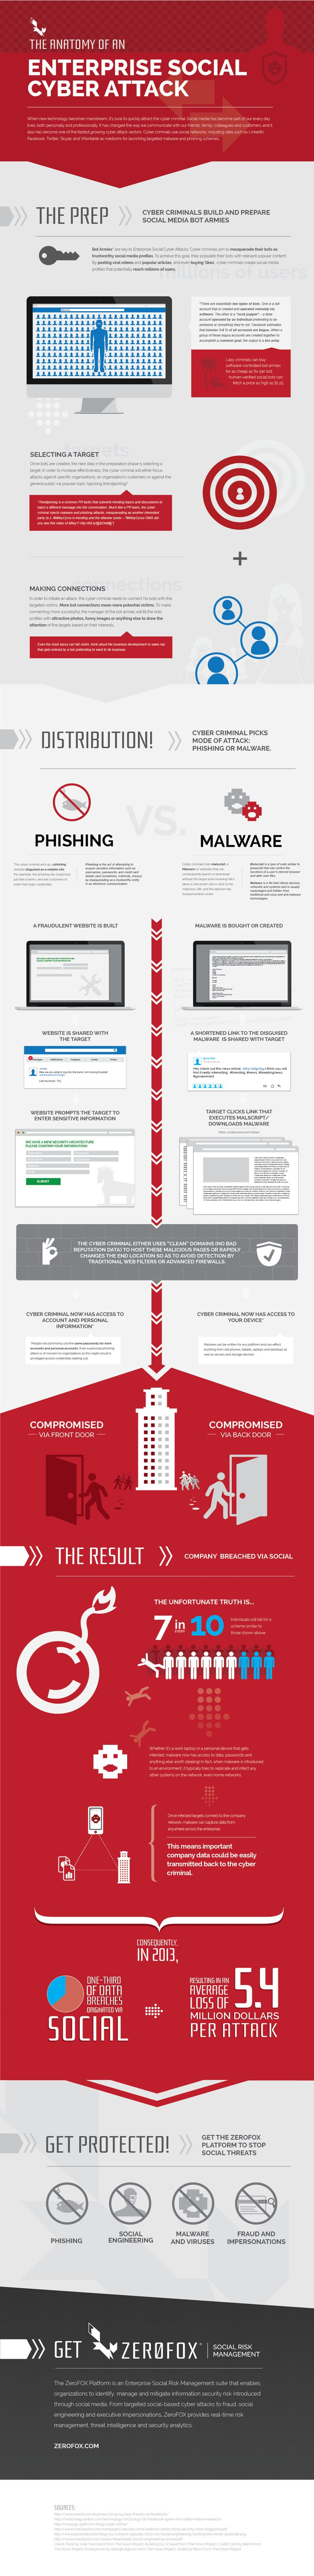 Infographic: The Anatomy of an Enterprise Social Cyber Attack #infographic #hacking #malware